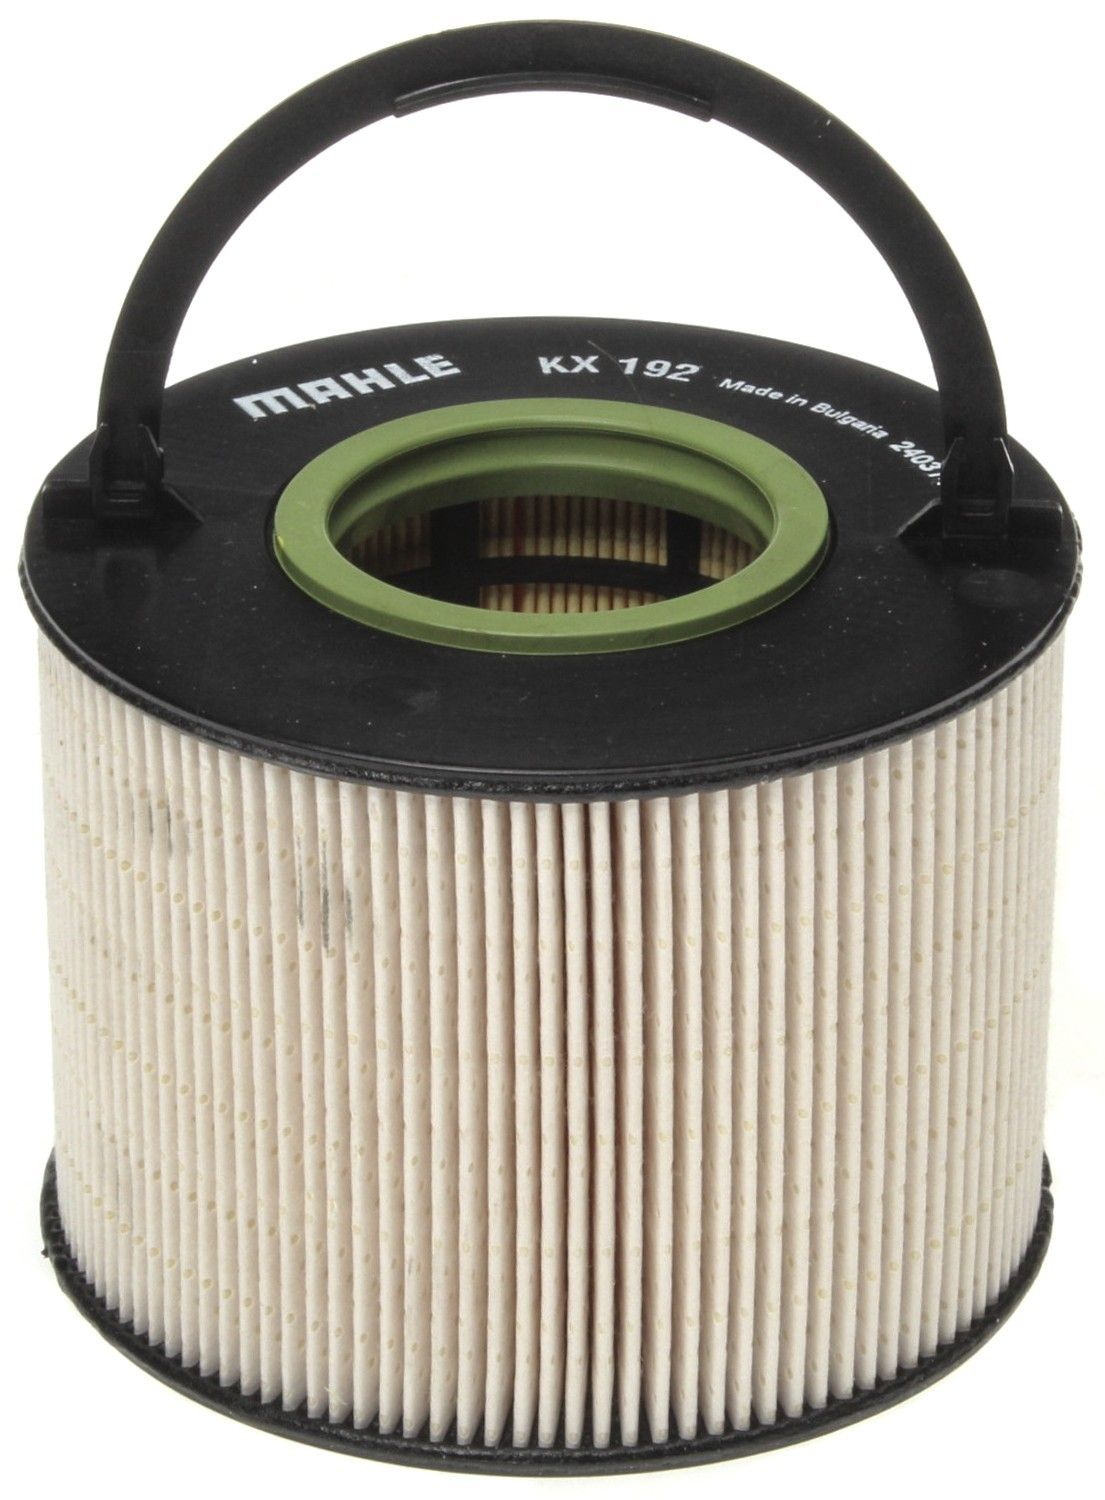 2009 Volkswagen Touareg Fuel Filter - Engine 6 Cyl 3.0L (Mahle KX 192D)  Filter Type Fuel Filter Cartridge .